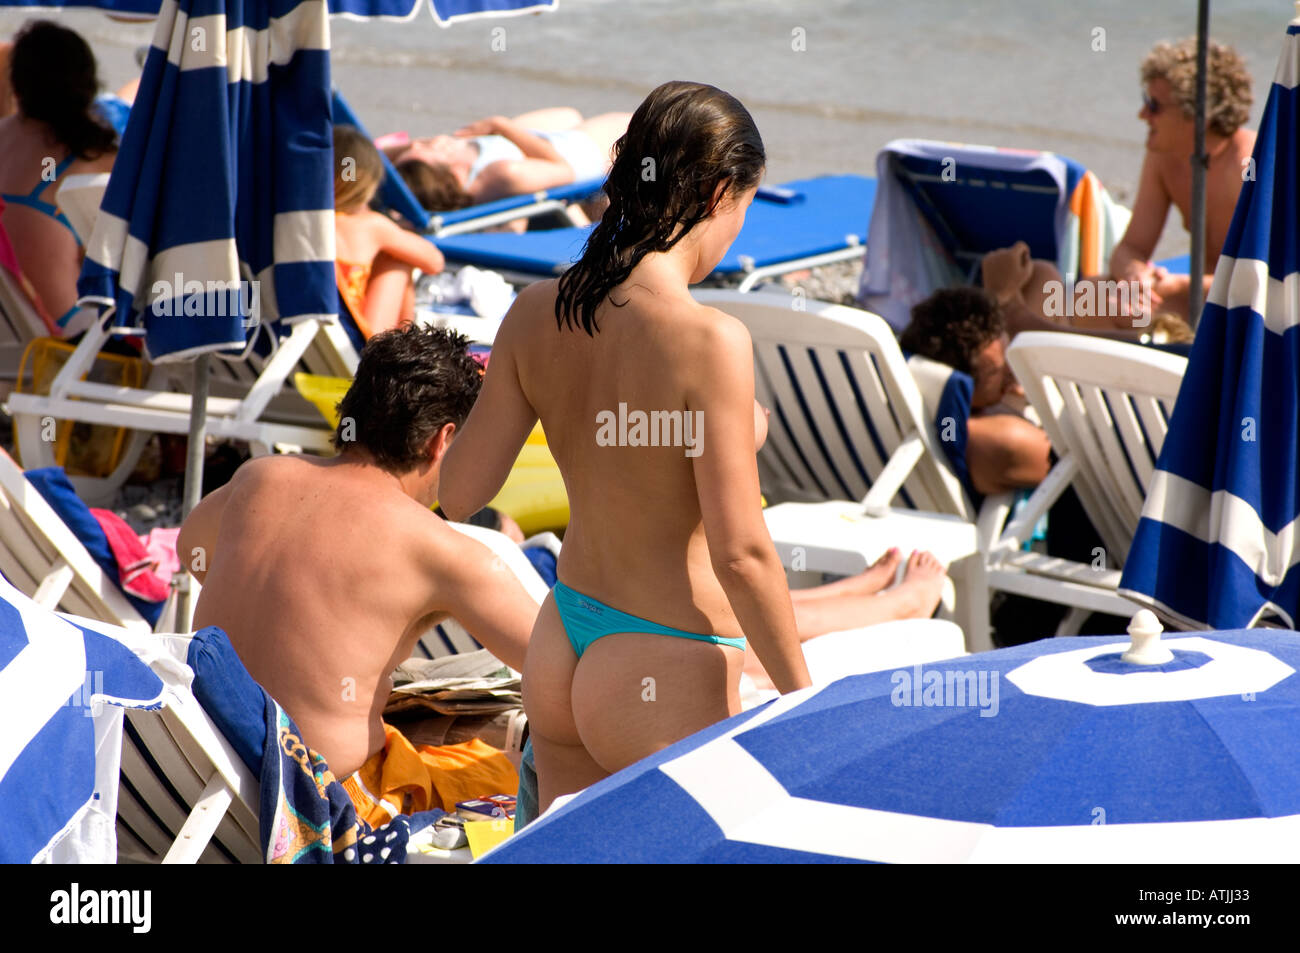 31c2722a60801a Thong Bikini Stock Photos   Thong Bikini Stock Images - Alamy